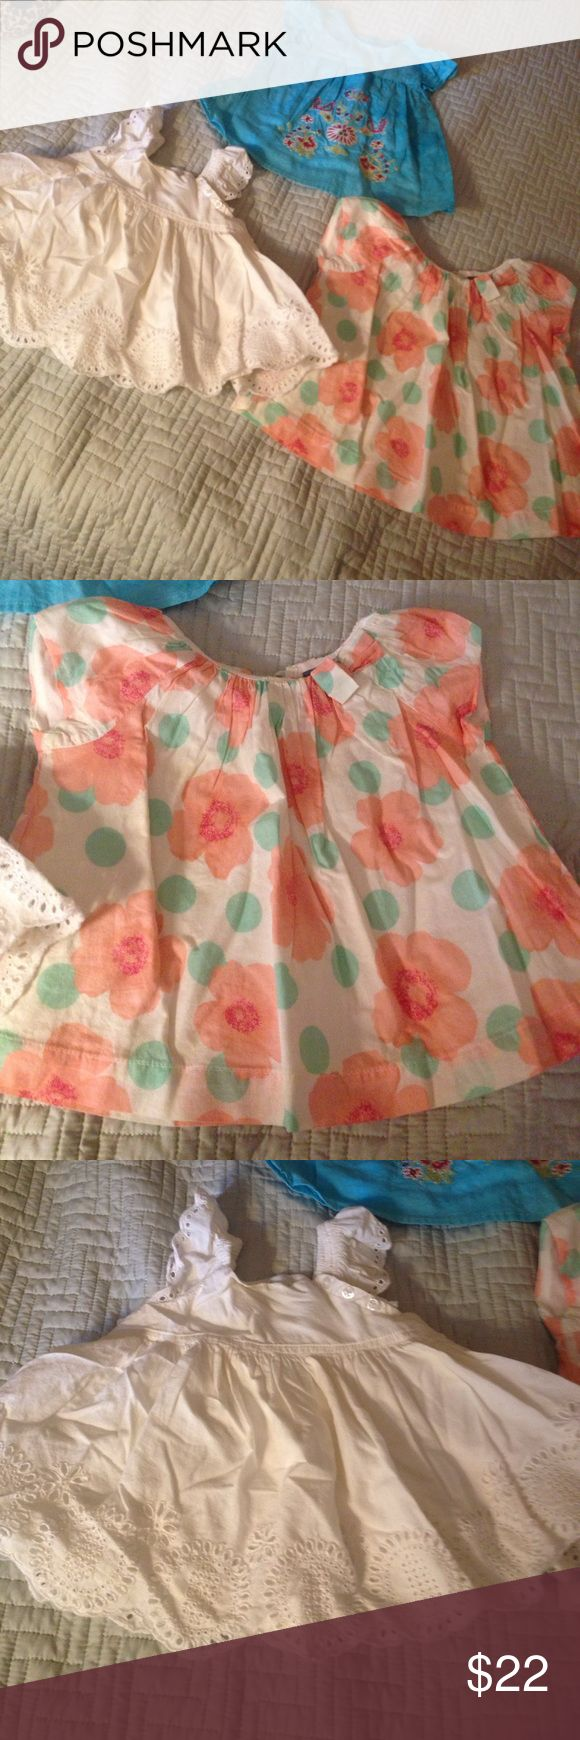 FINAL PRICE! 3 adorable summer tops All items are and in great condition. Gap & Amy Coe Brands. Summer tops. Two are size 6 to 12 and is 6 months. Final price unless bundling with other items. gap & amy coe Shirts & Tops